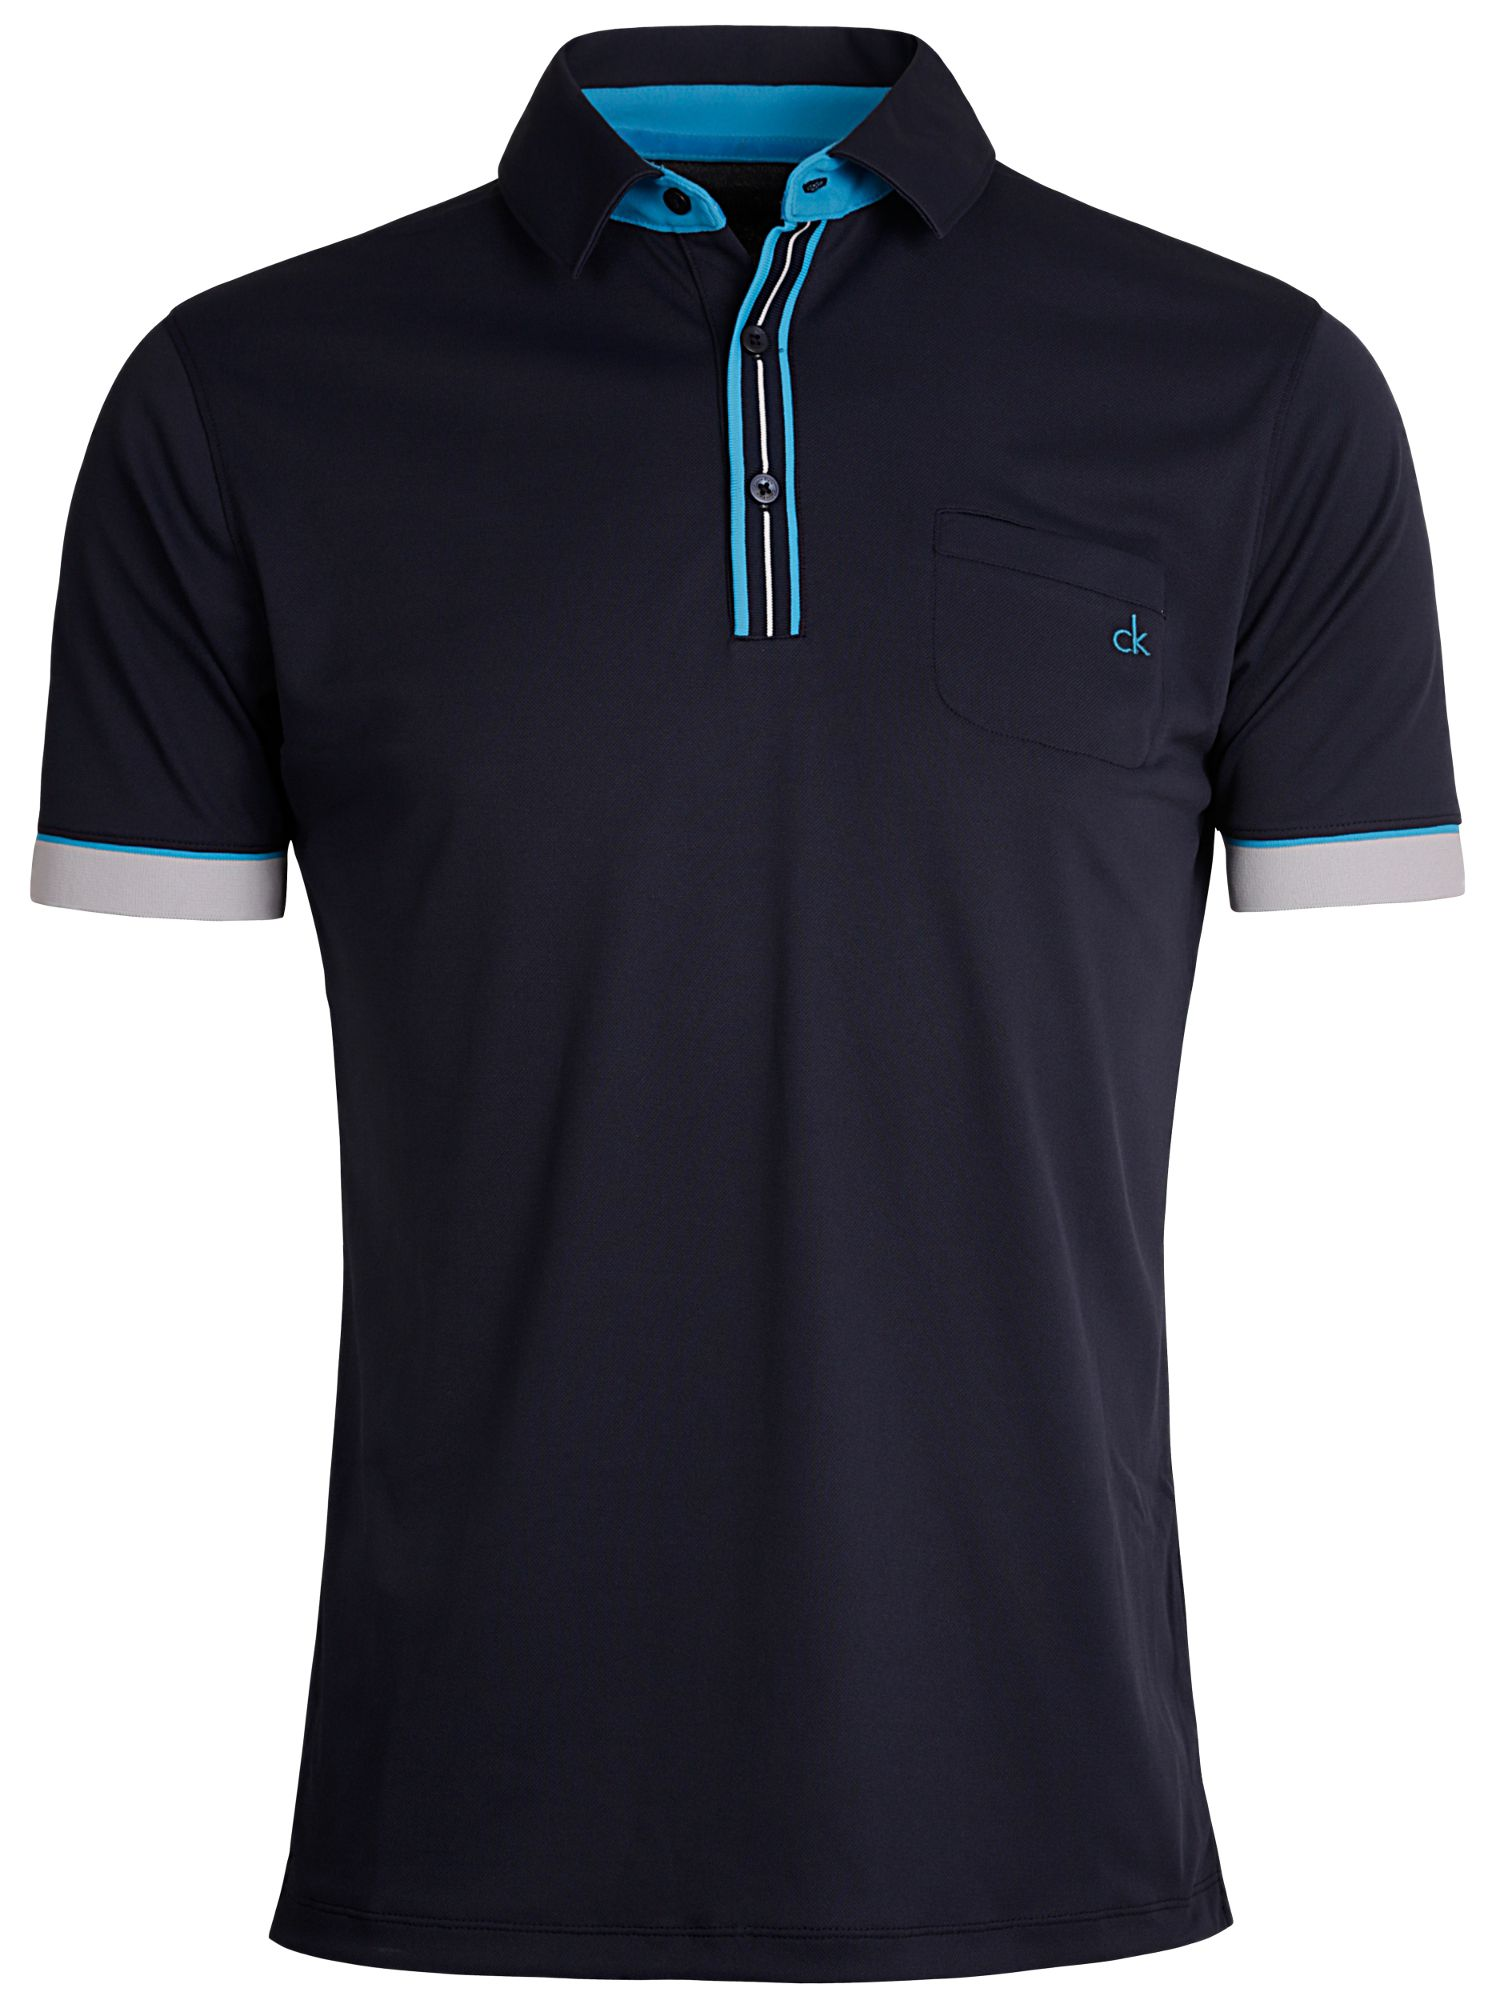 Tech pocket polo shirt